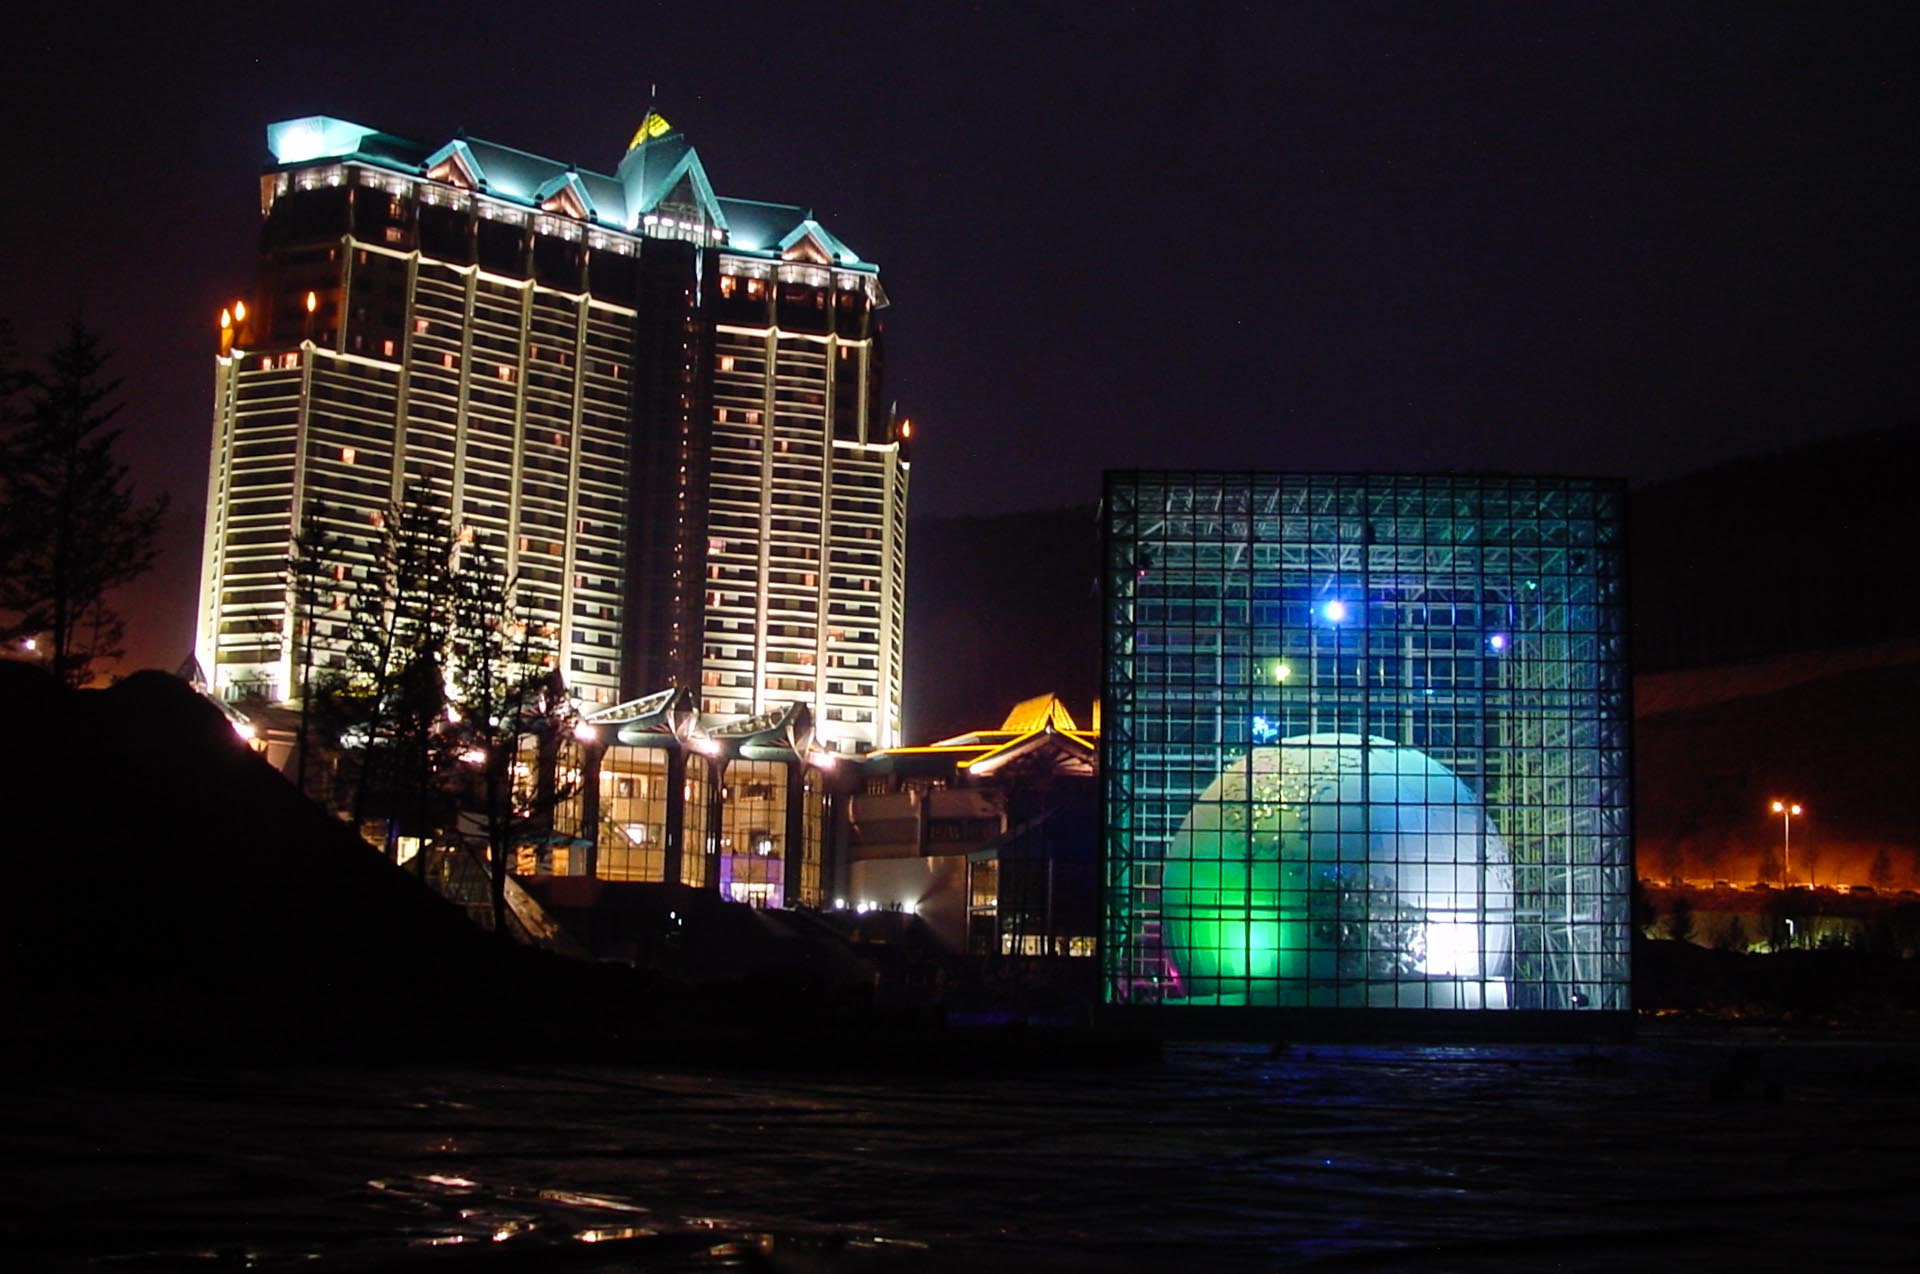 Casino briefs: Kangwon Land casino shutdown; Macau suffers; New casino planned in Vietnam